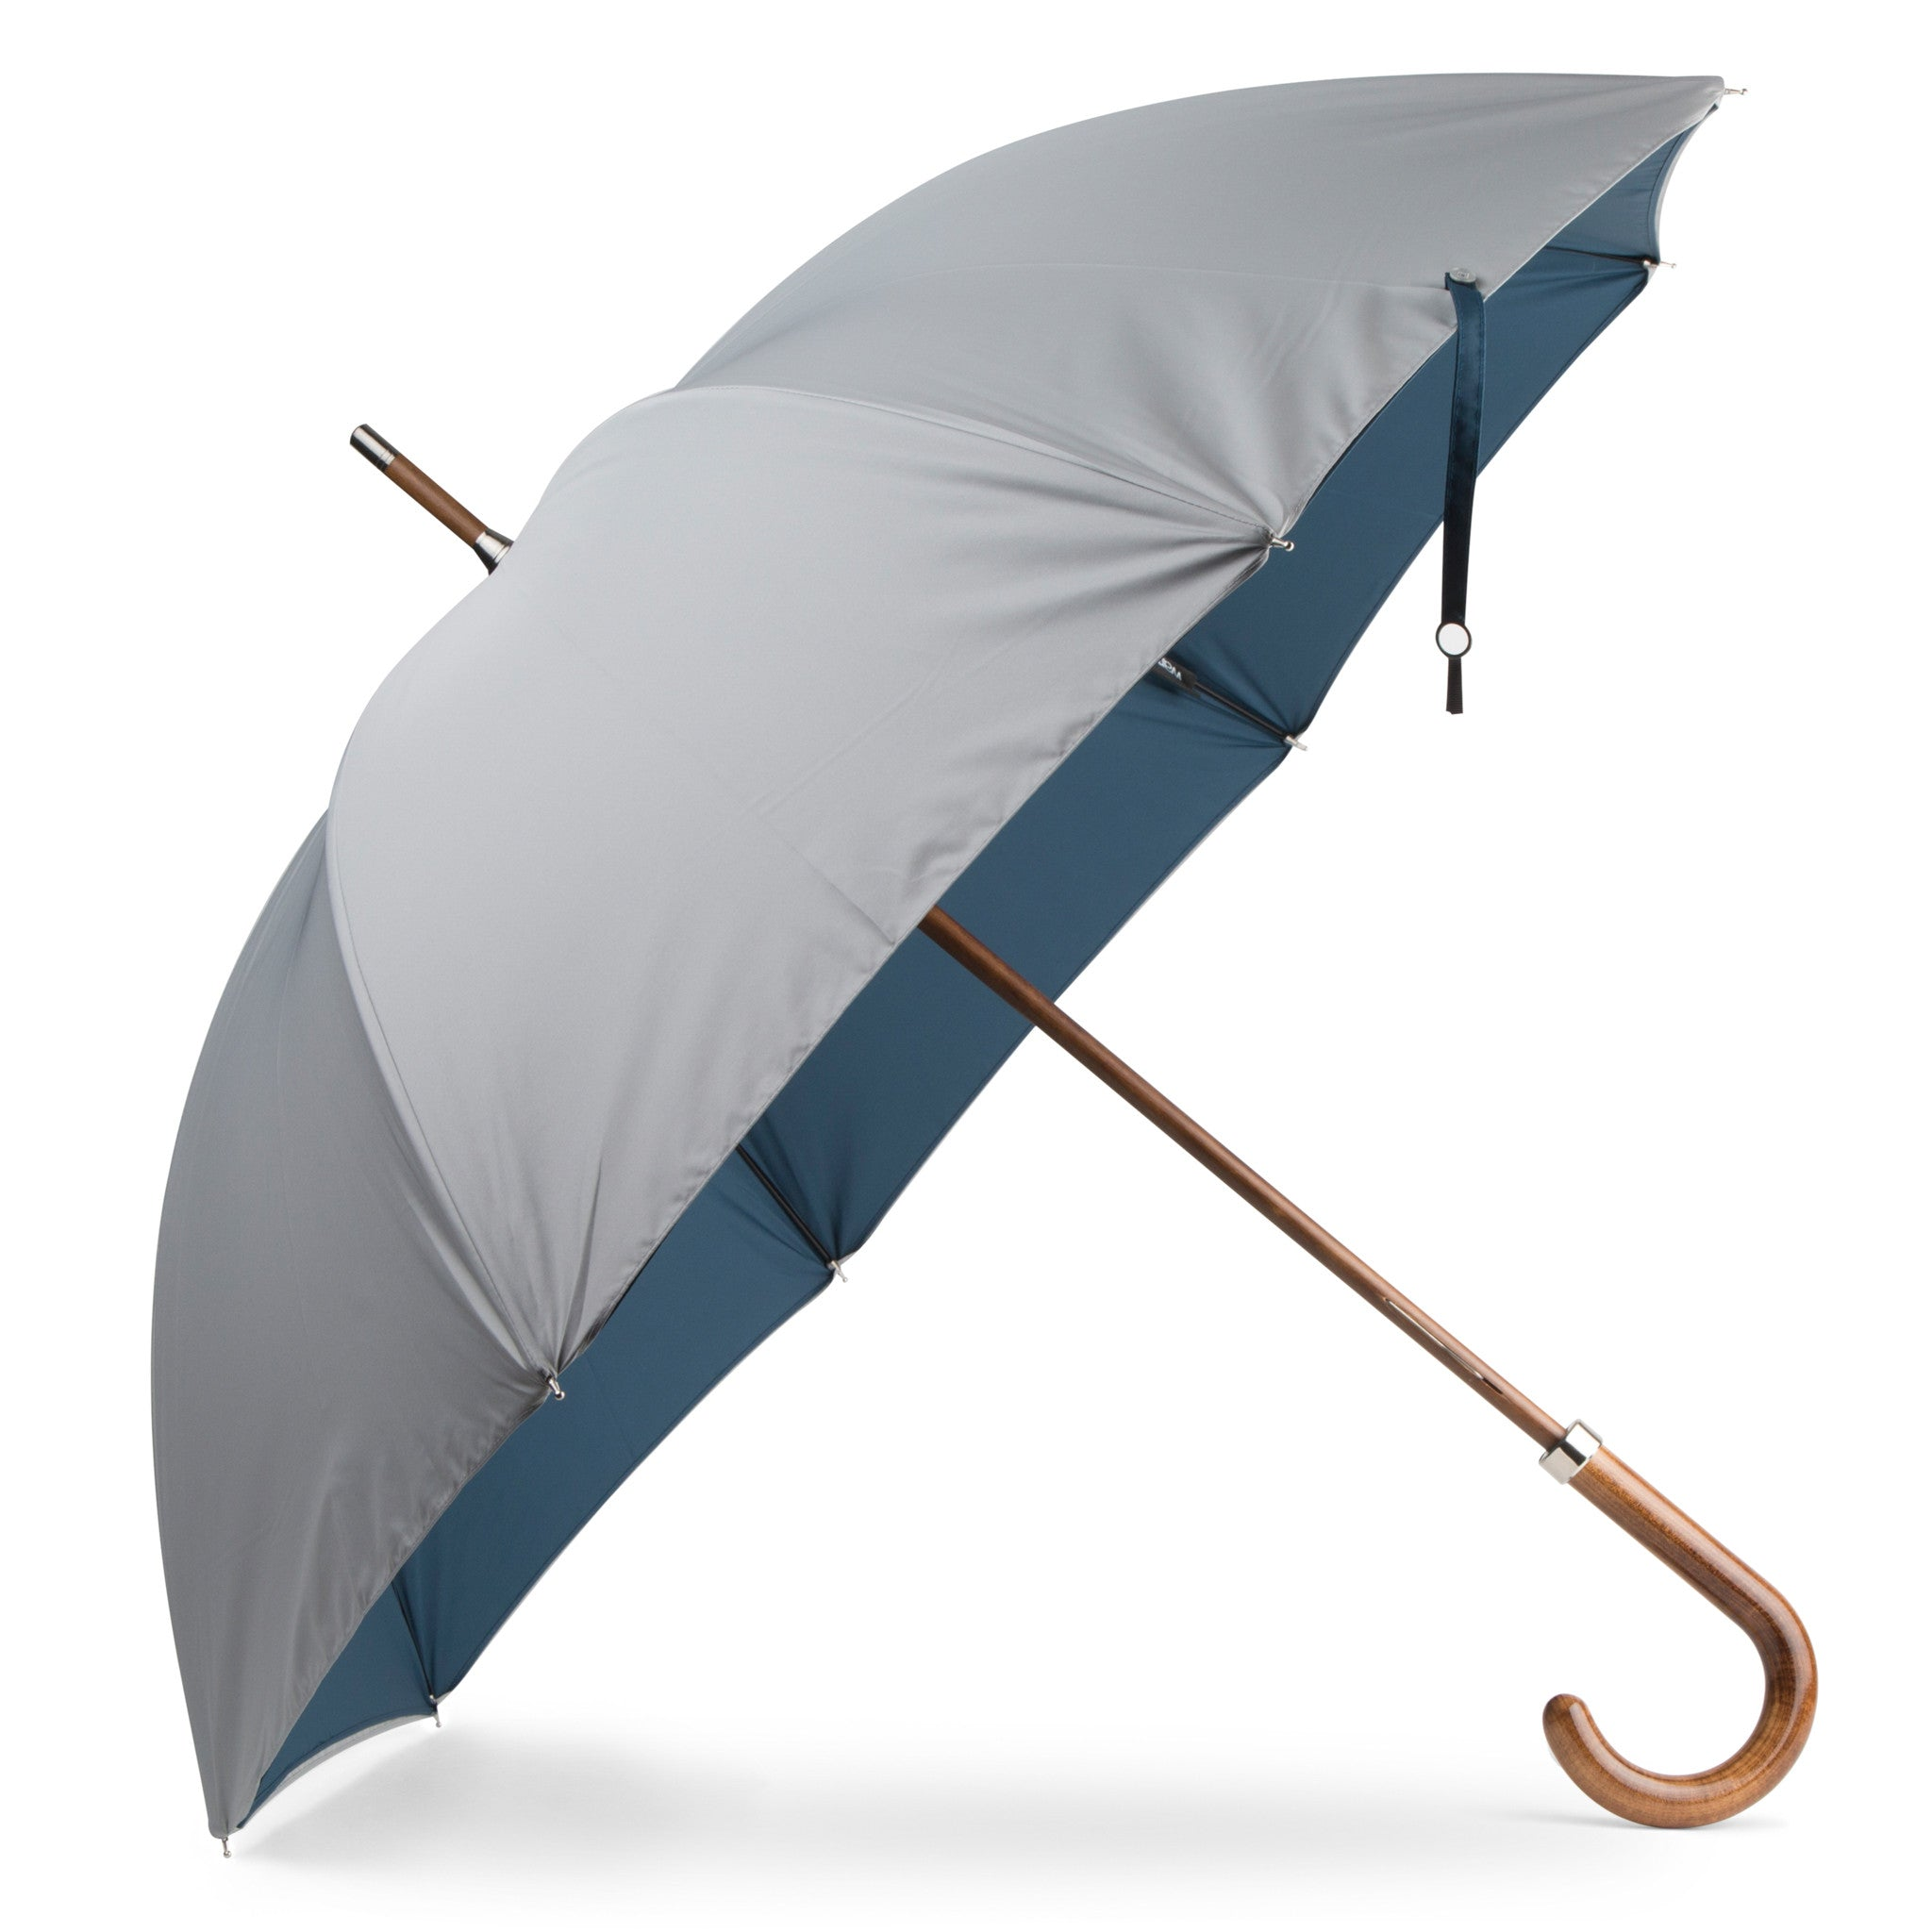 British Umbrella, Beech & Maple - Grey/Mallard | Parapluie Anglais, Hêtre & Erable - Gris/Colvert